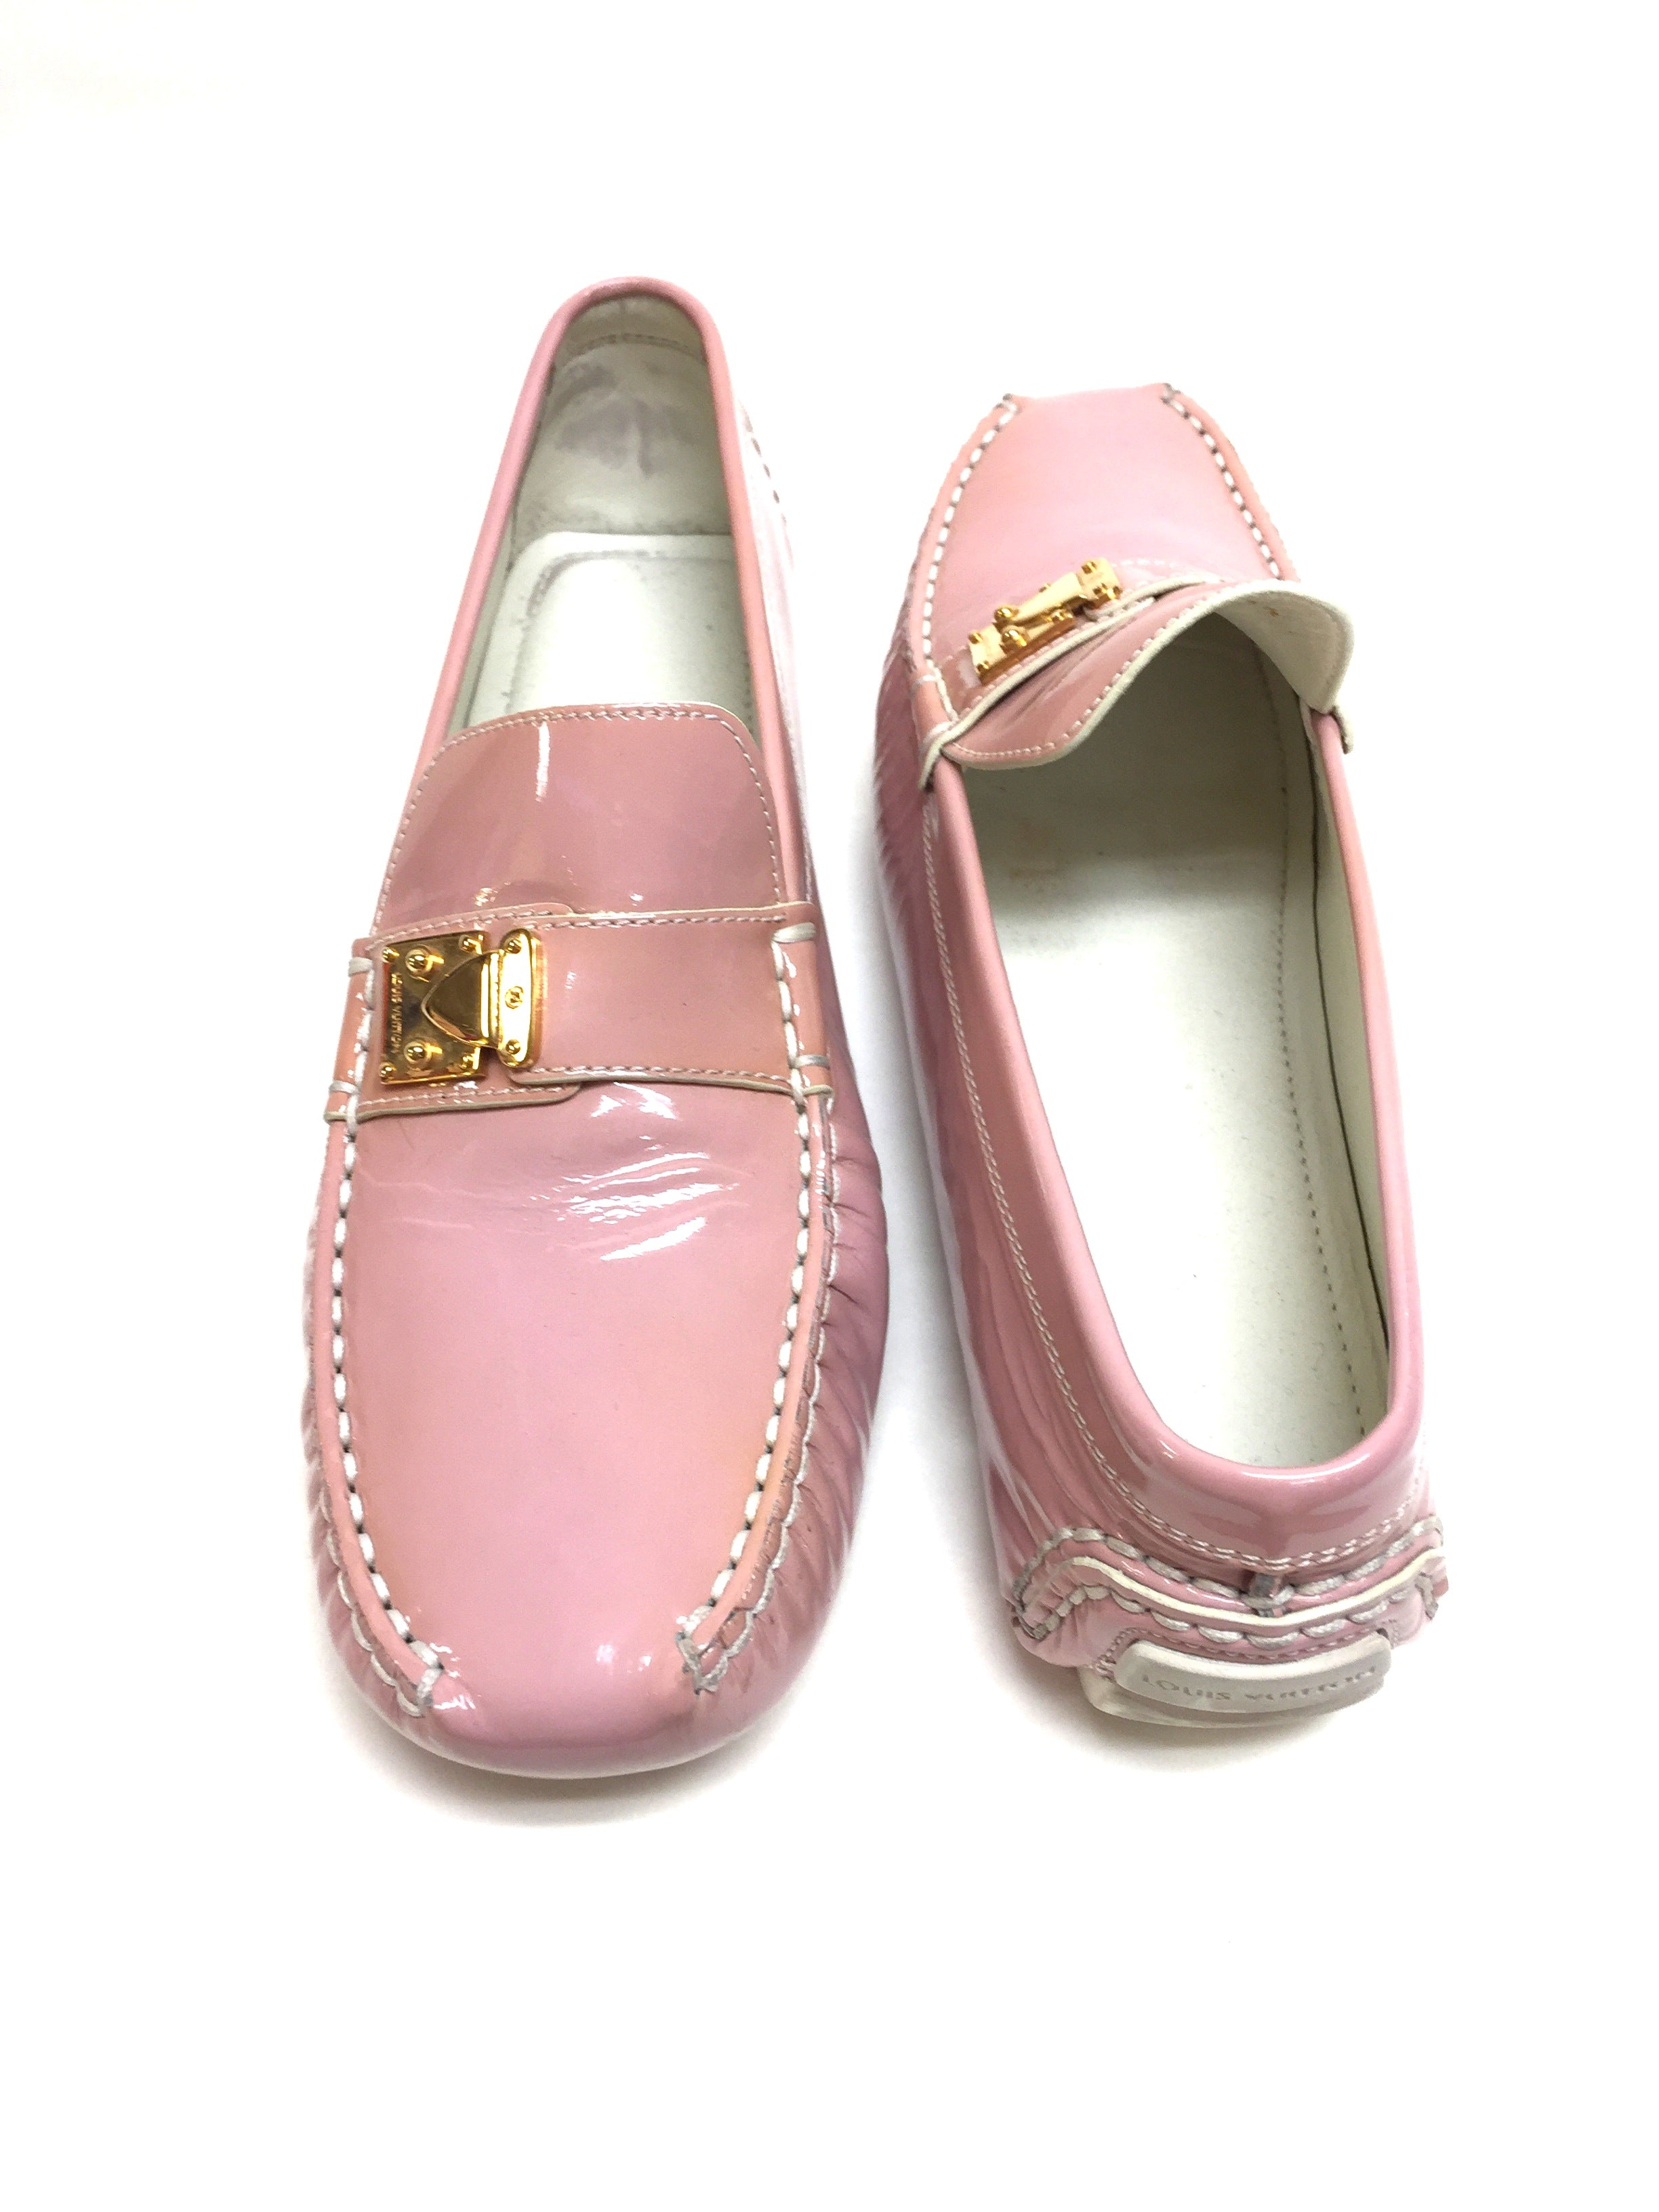 0885411a110 LOUIS VUITTON Pink Patent Leather LOMBOK Women Driving Loafers Shoes Shoes  Size  39.5